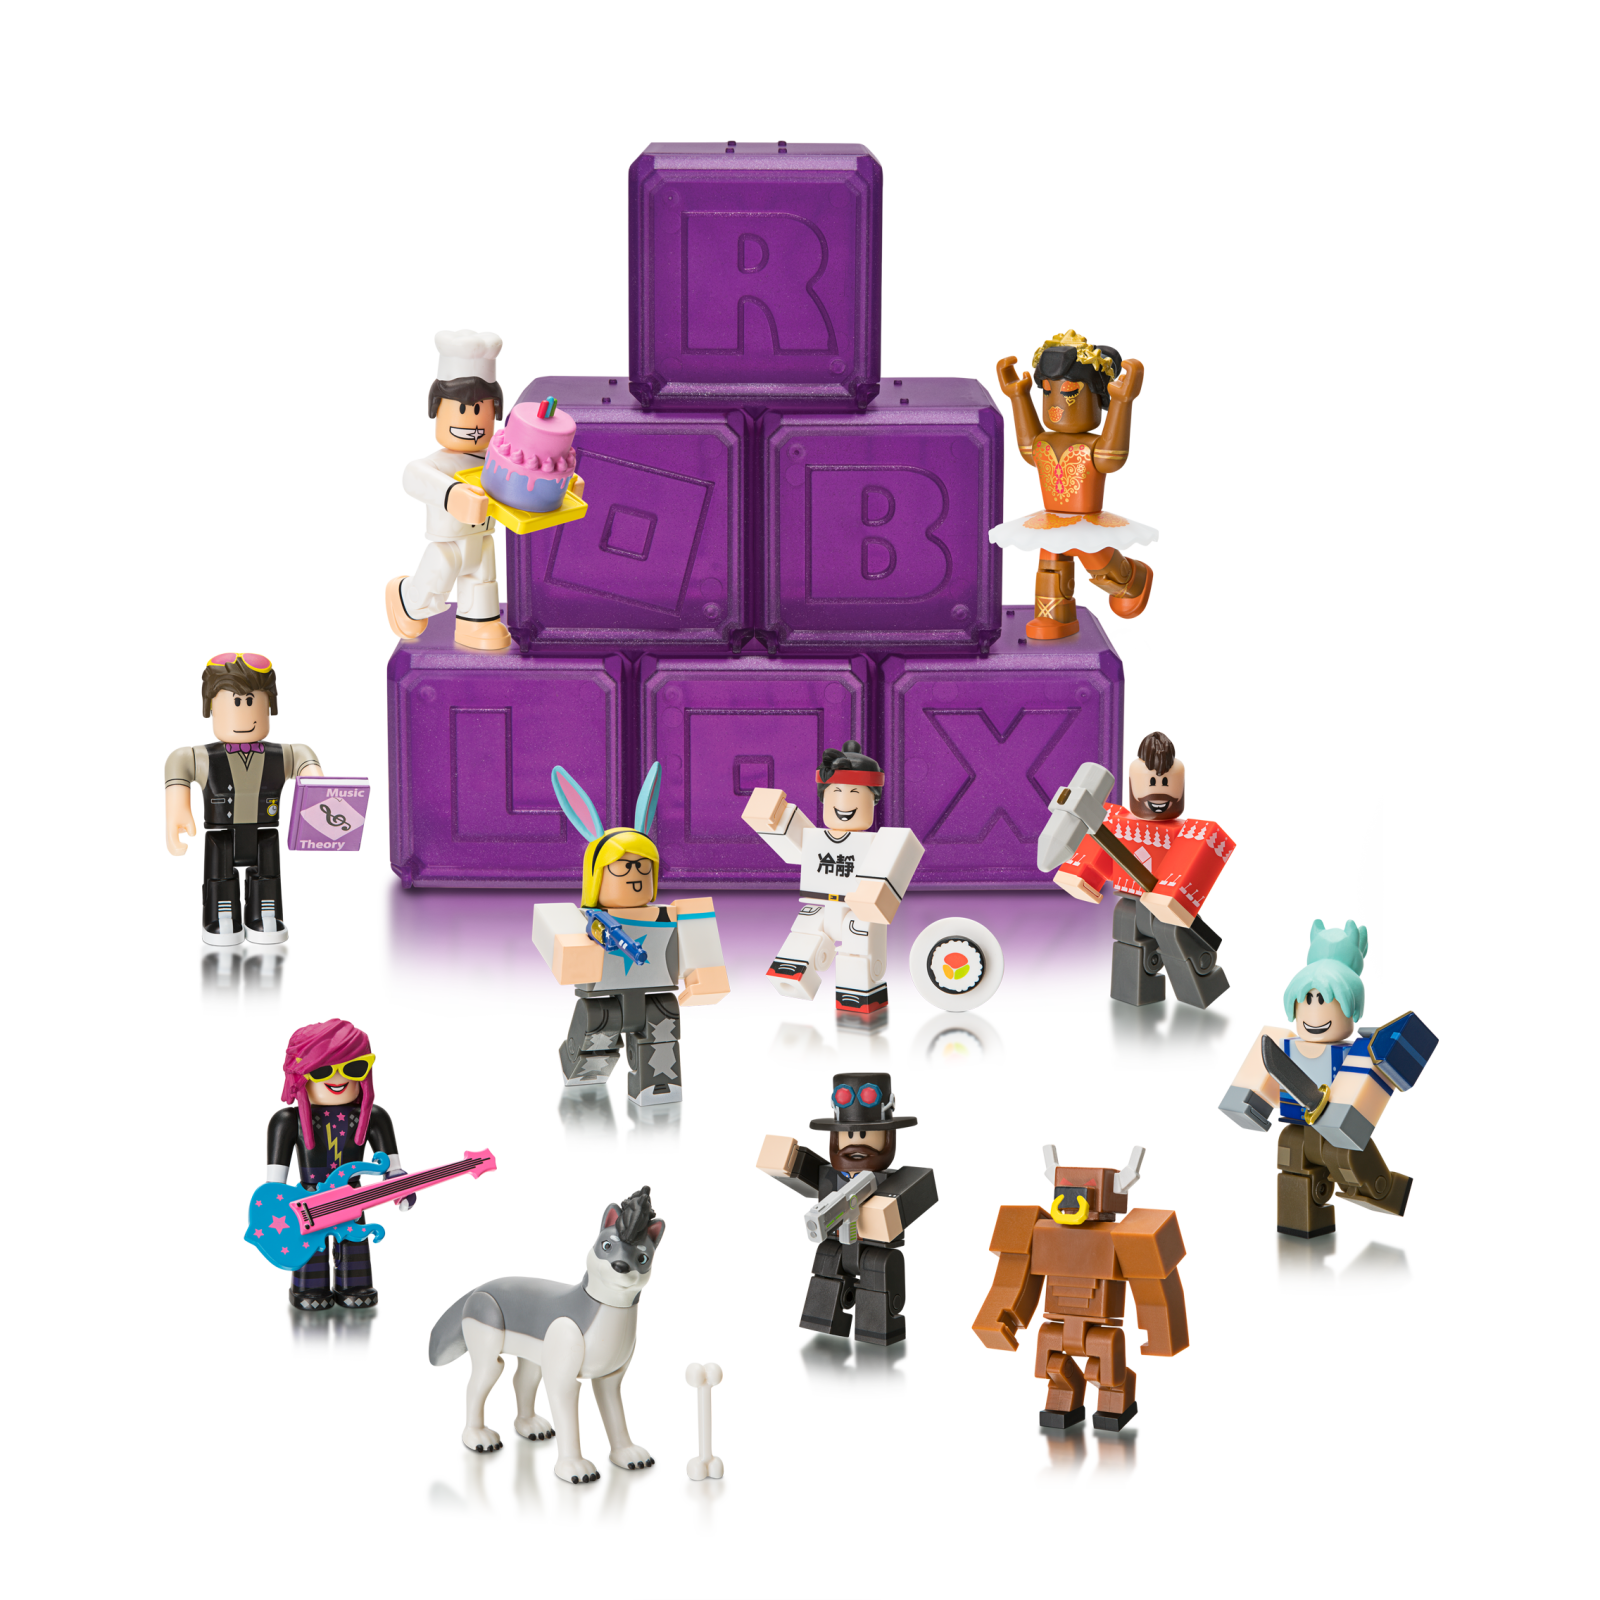 Details About Roblox Celebrity Collection Series 3 Mystery Pack Purple Cube - Roblox Gold Series 3 Celebrity Collection Mystery Pack